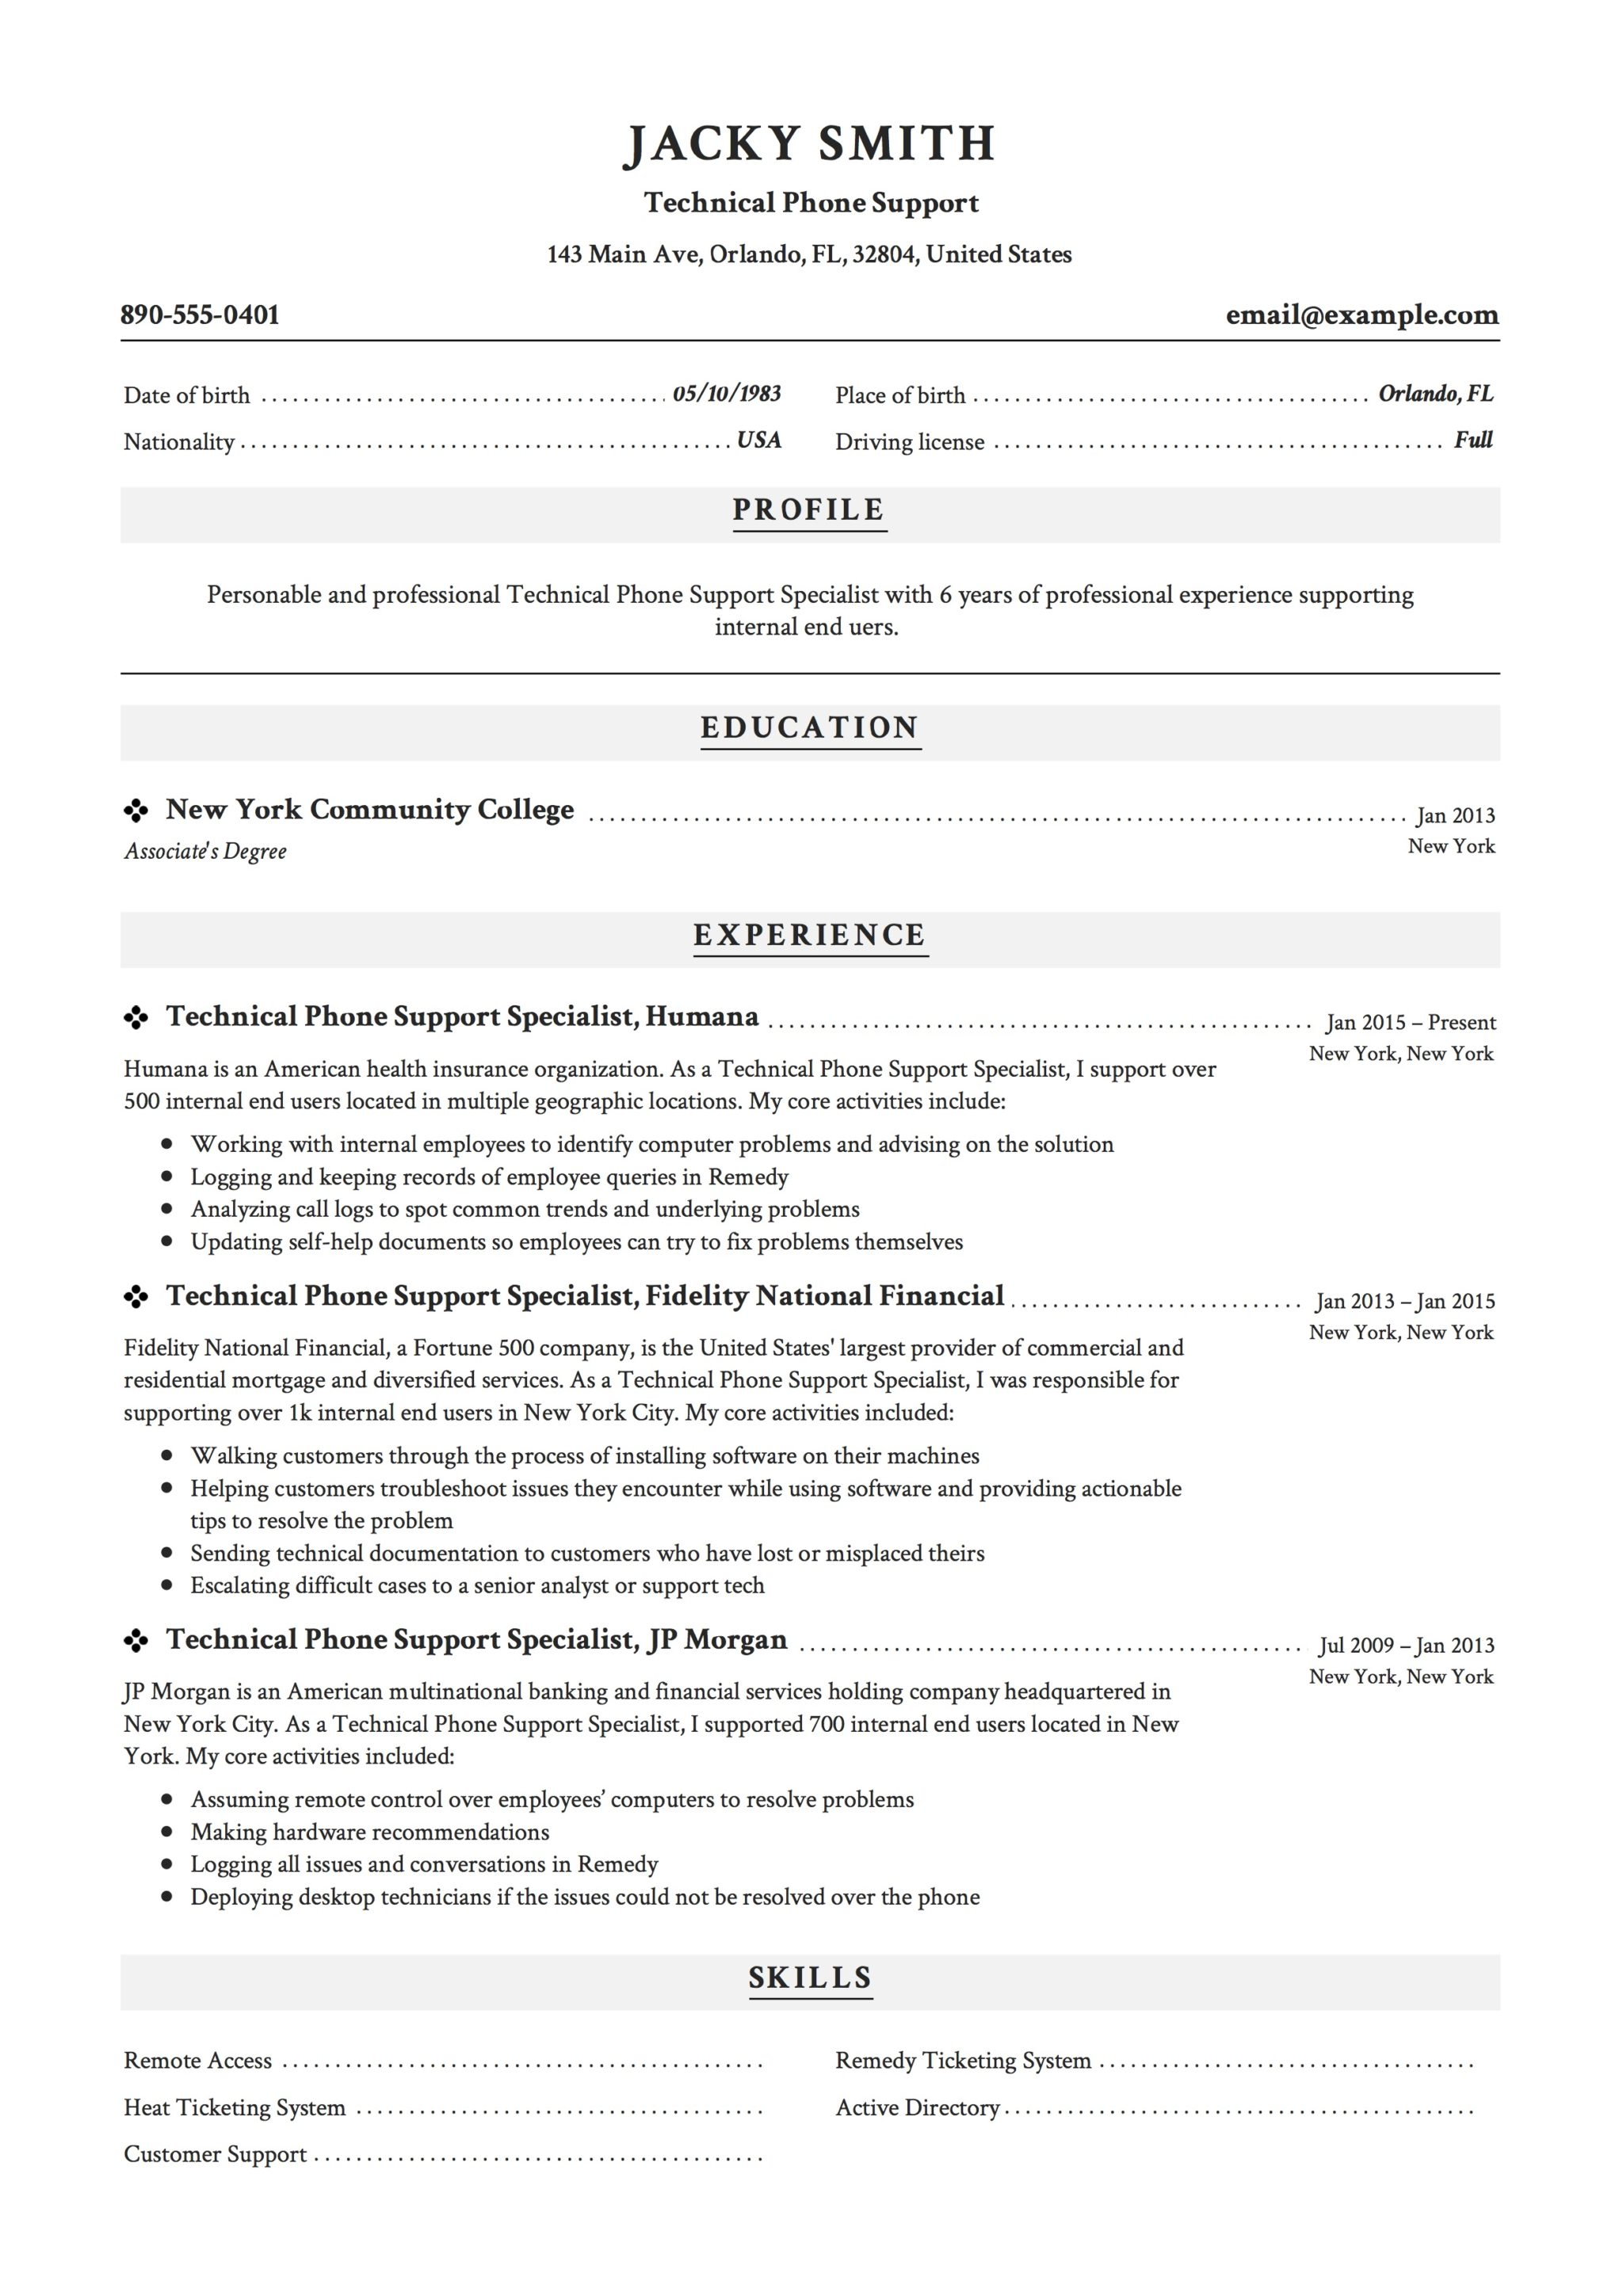 Technical Phone Support Resume Example